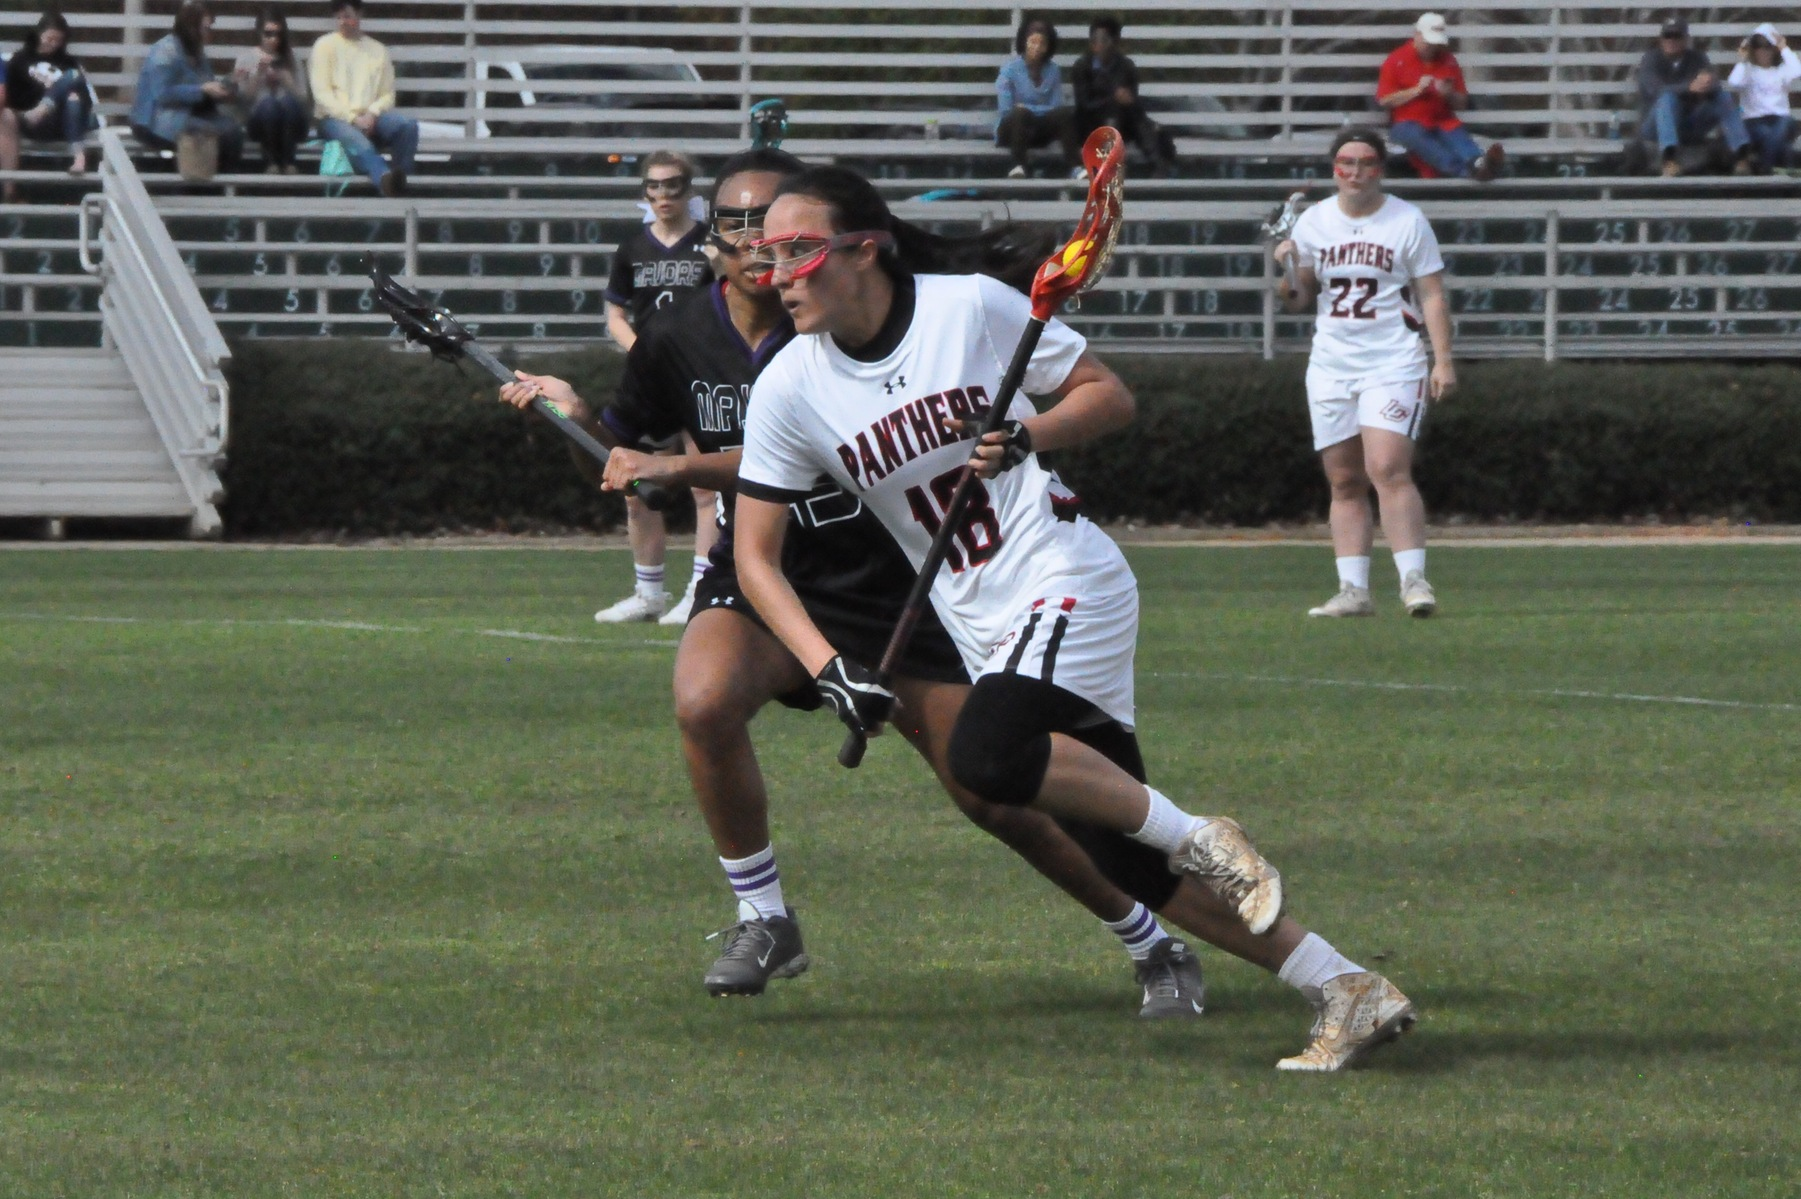 Lacrosse: Panthers open 2017 season with 13-7 win over Millsaps